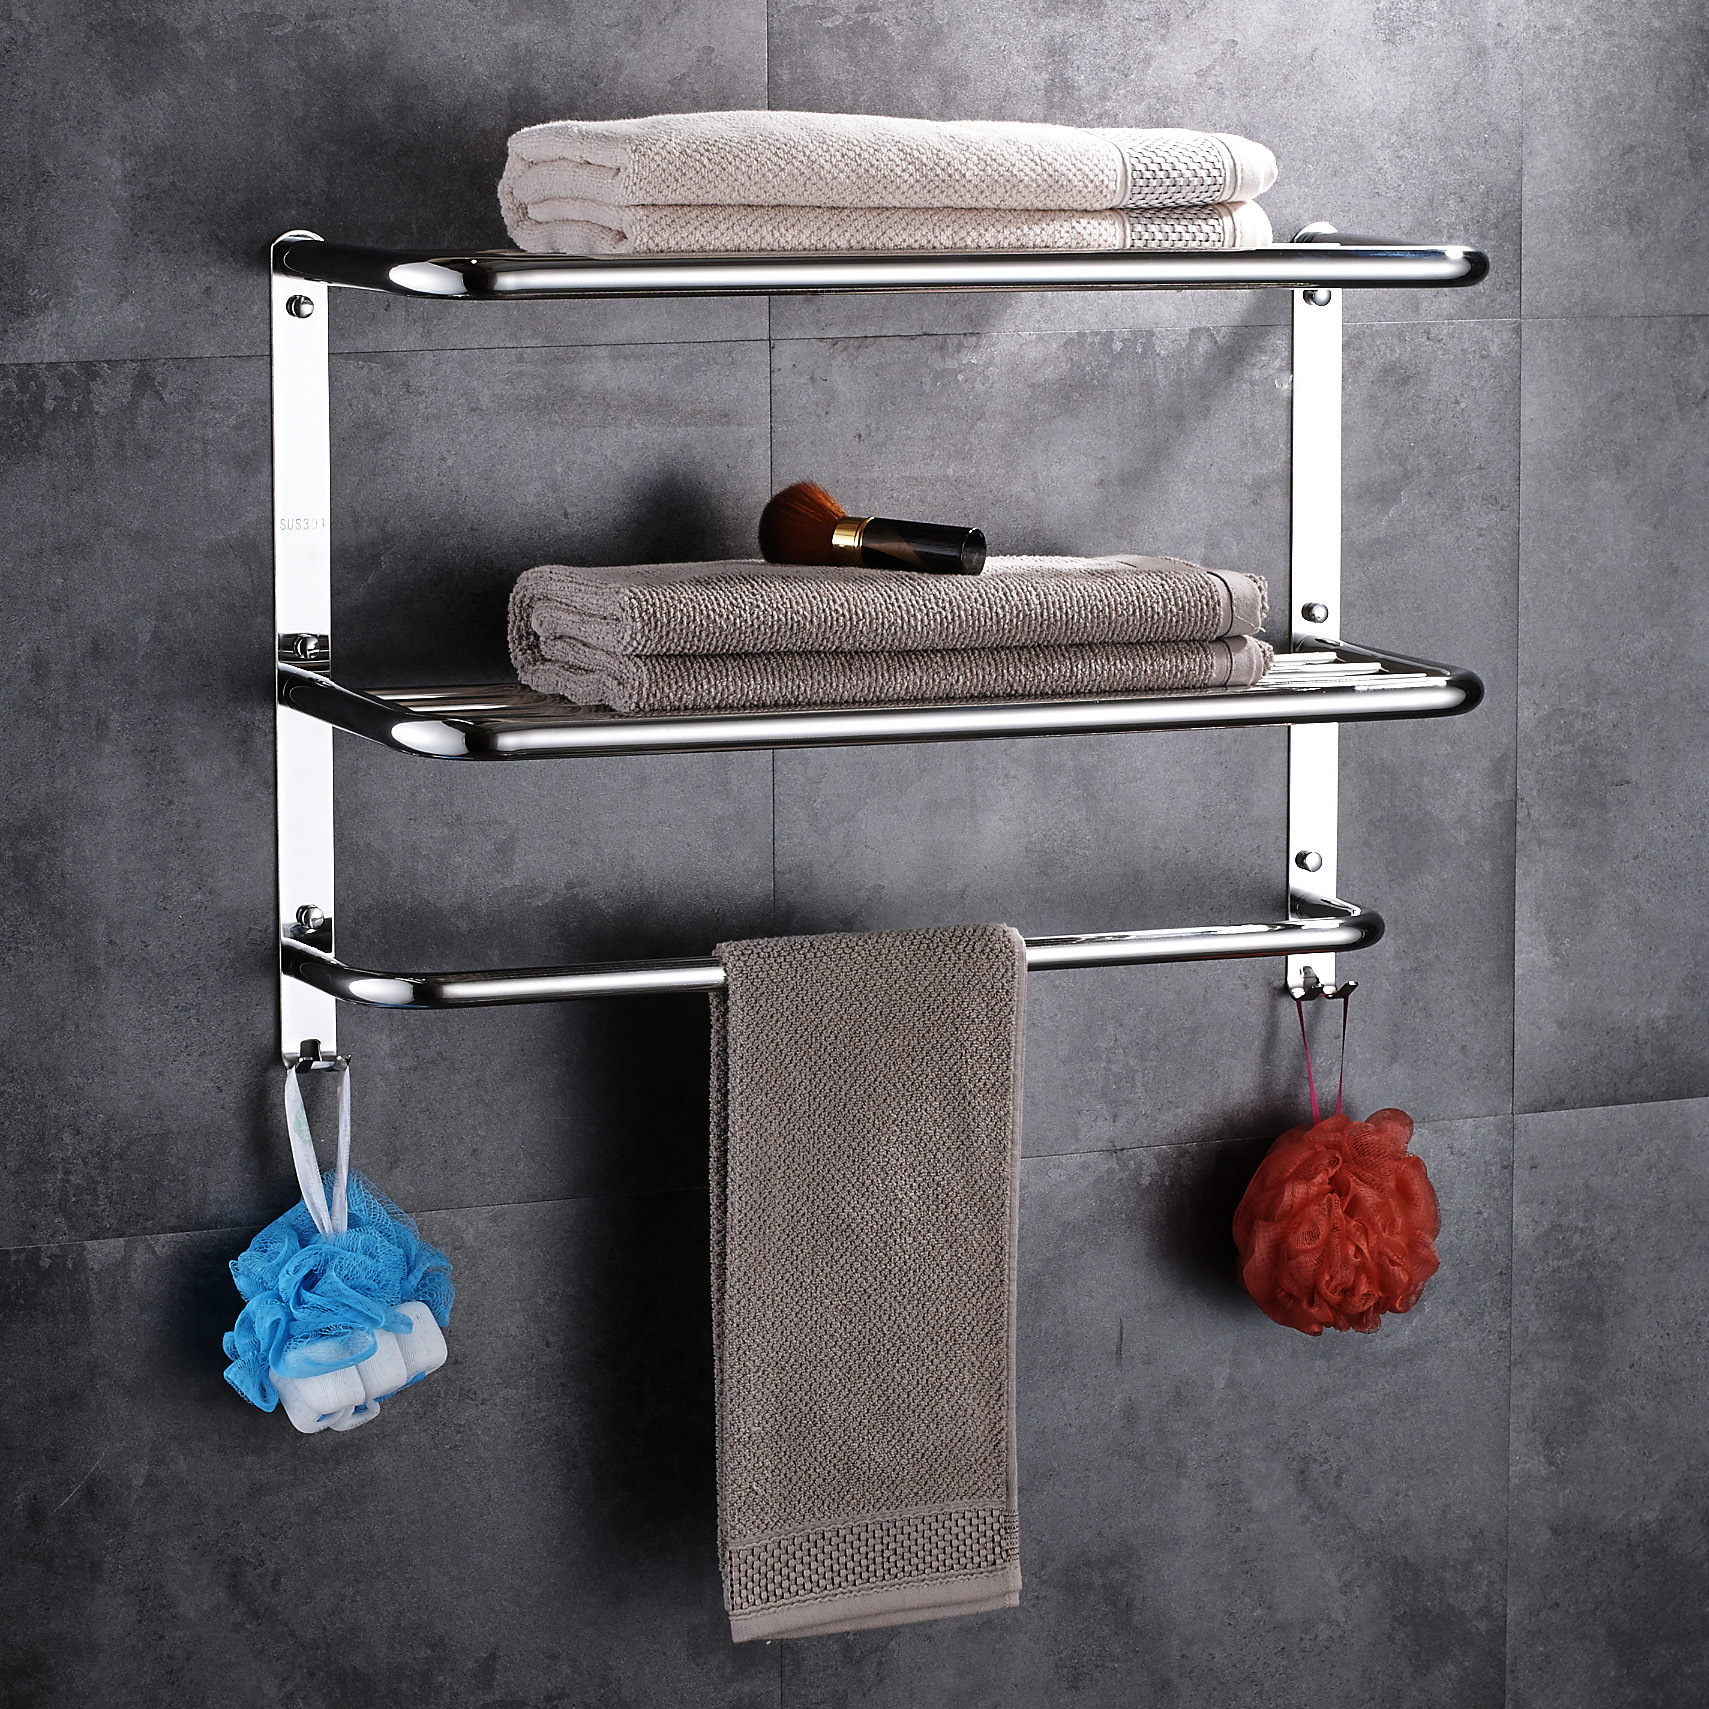 купить 3 layers polish Towel rack stainless steel 304 bathroom shelf bathroom multi-function towel rack for bathroom accessories set по цене 3626.99 рублей